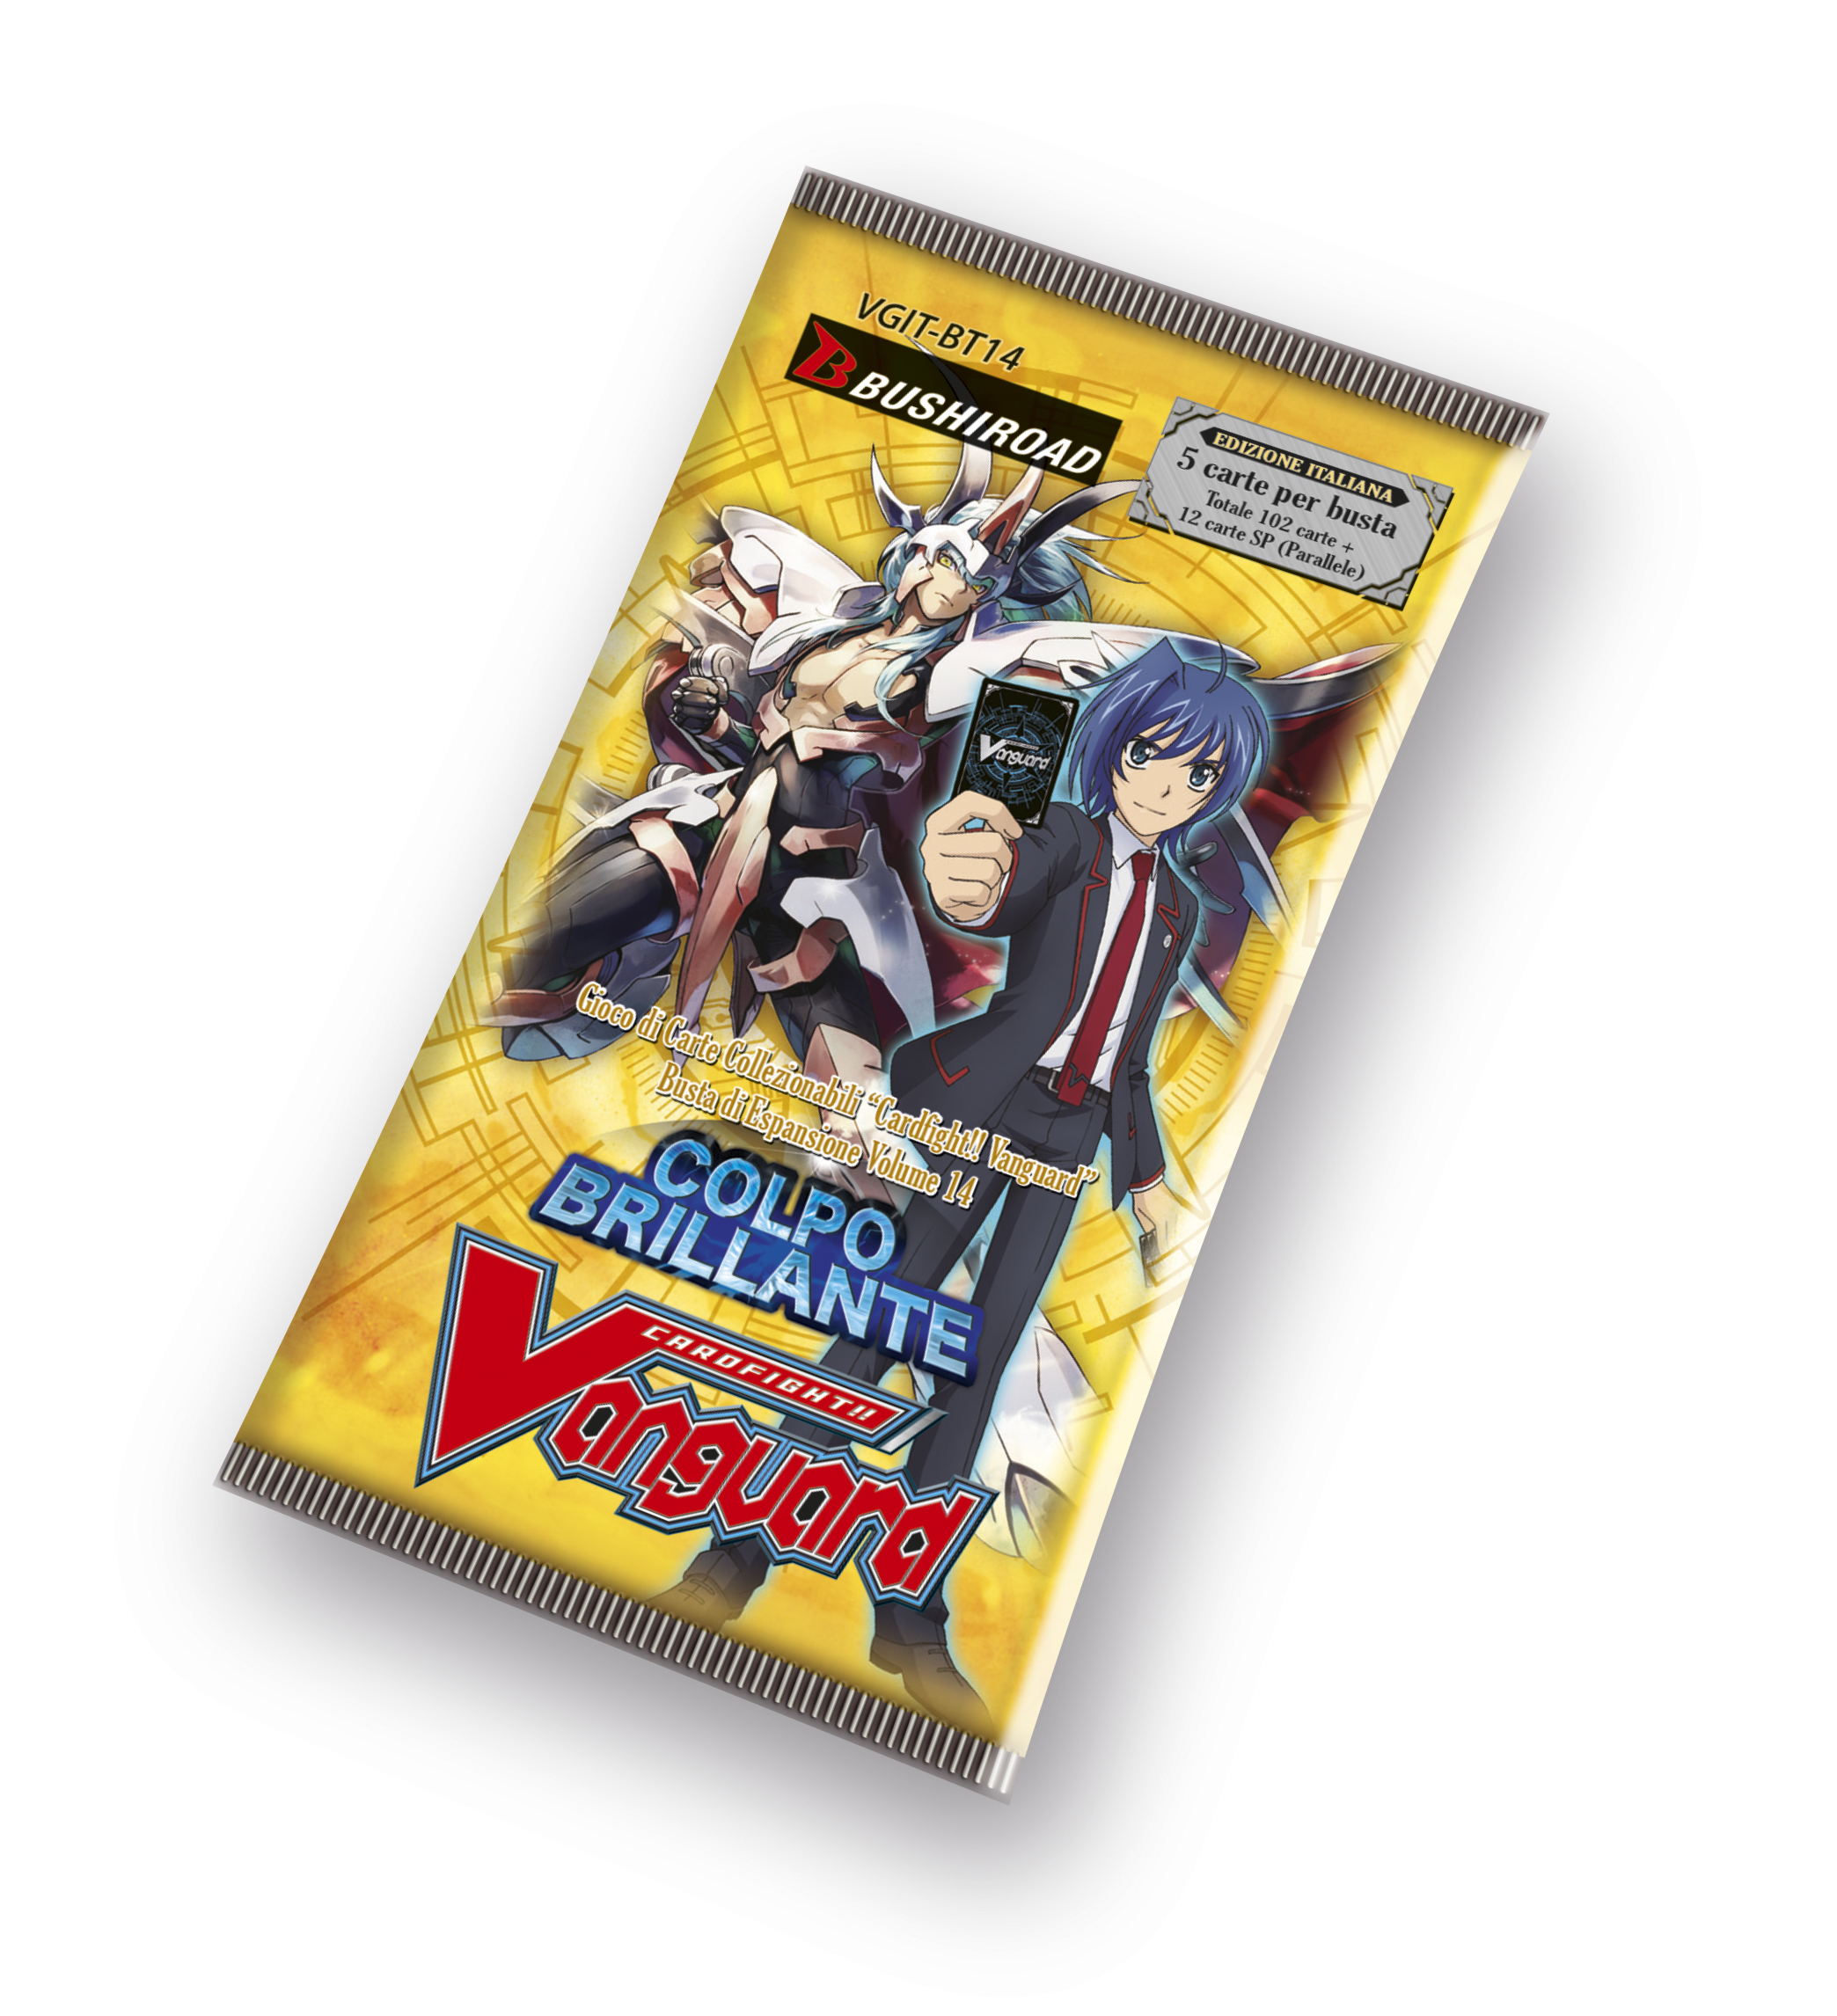 VGIT-BT14 VANGUARD - COLPO BRILLANTE - BOX 30 BUSTE